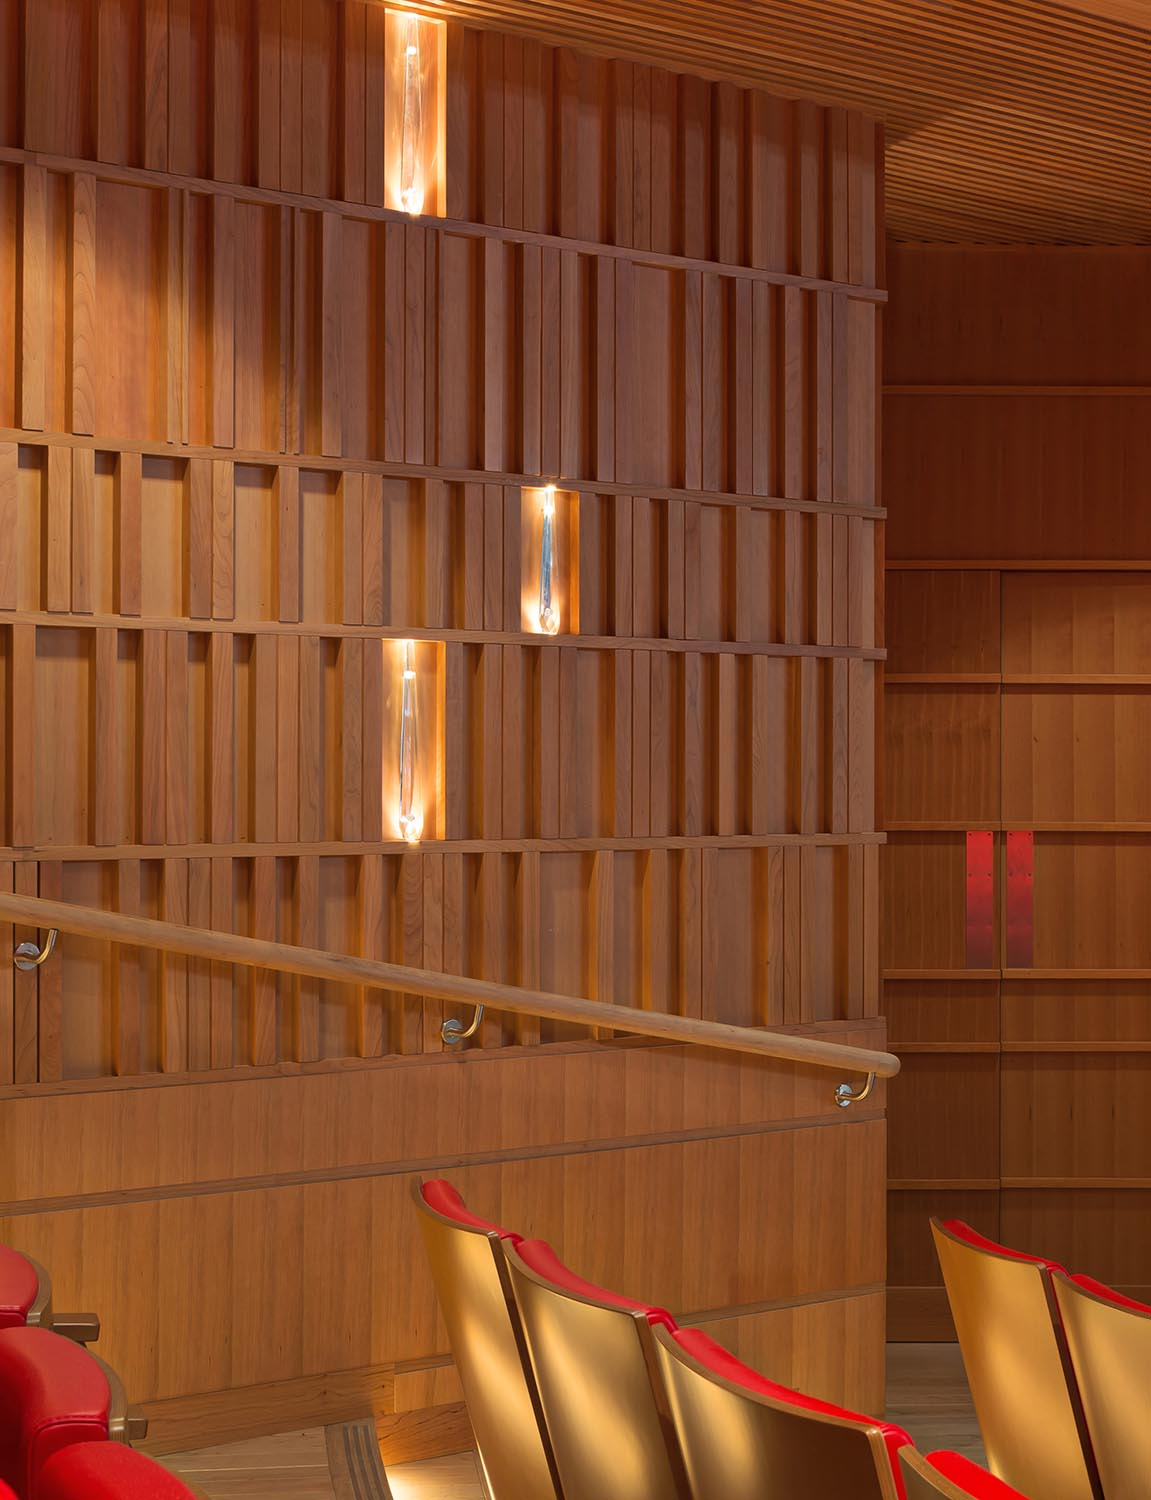 Susie Sainsbury Theatre - Cherry lined wall detail with embedded crystals Adam Scott